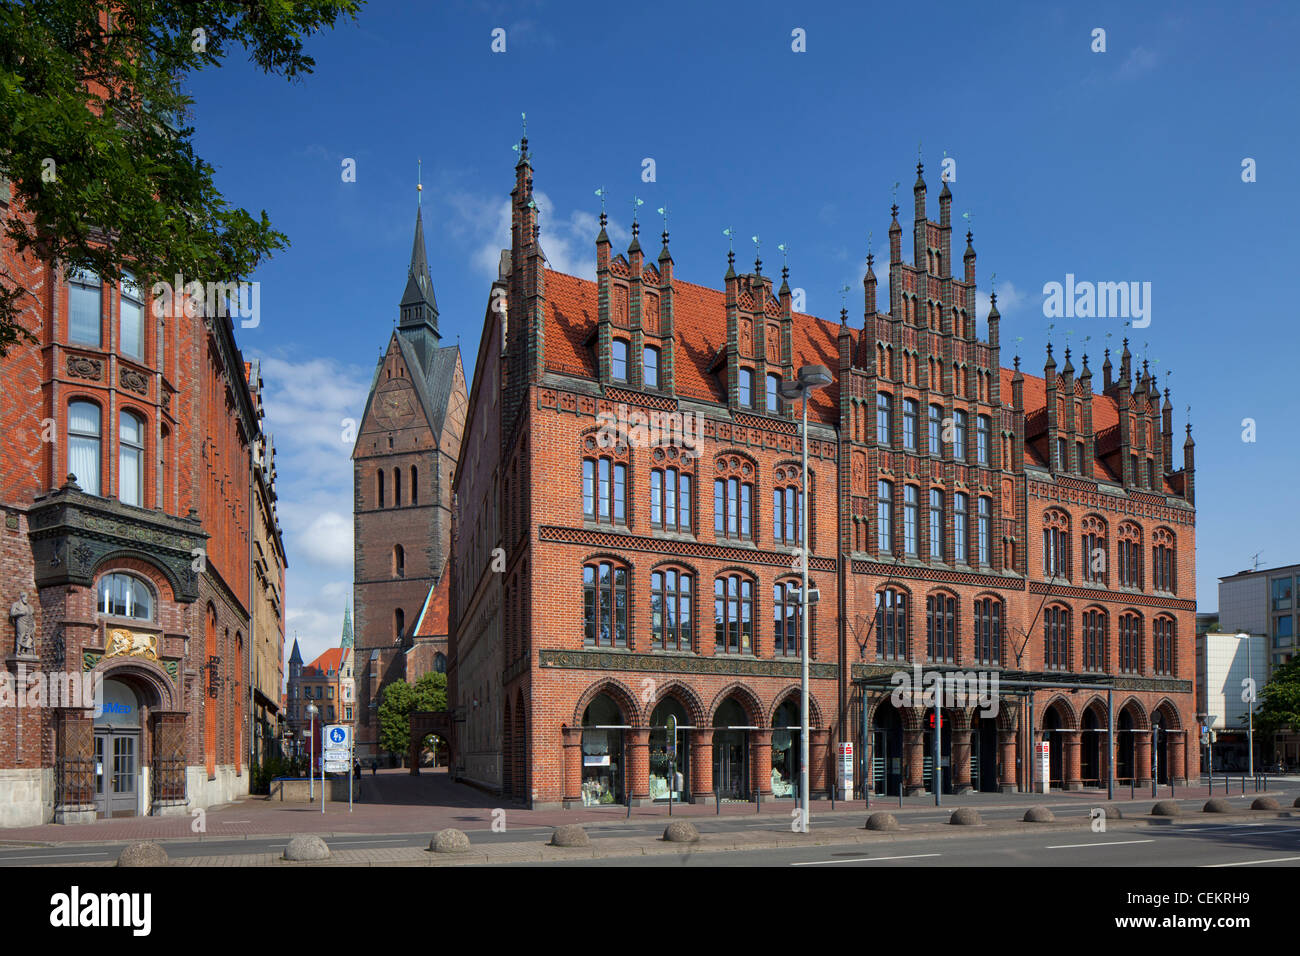 The Old Town Hall / Altes Rathaus in Hannover, Lower Saxony, Germany - Stock Image